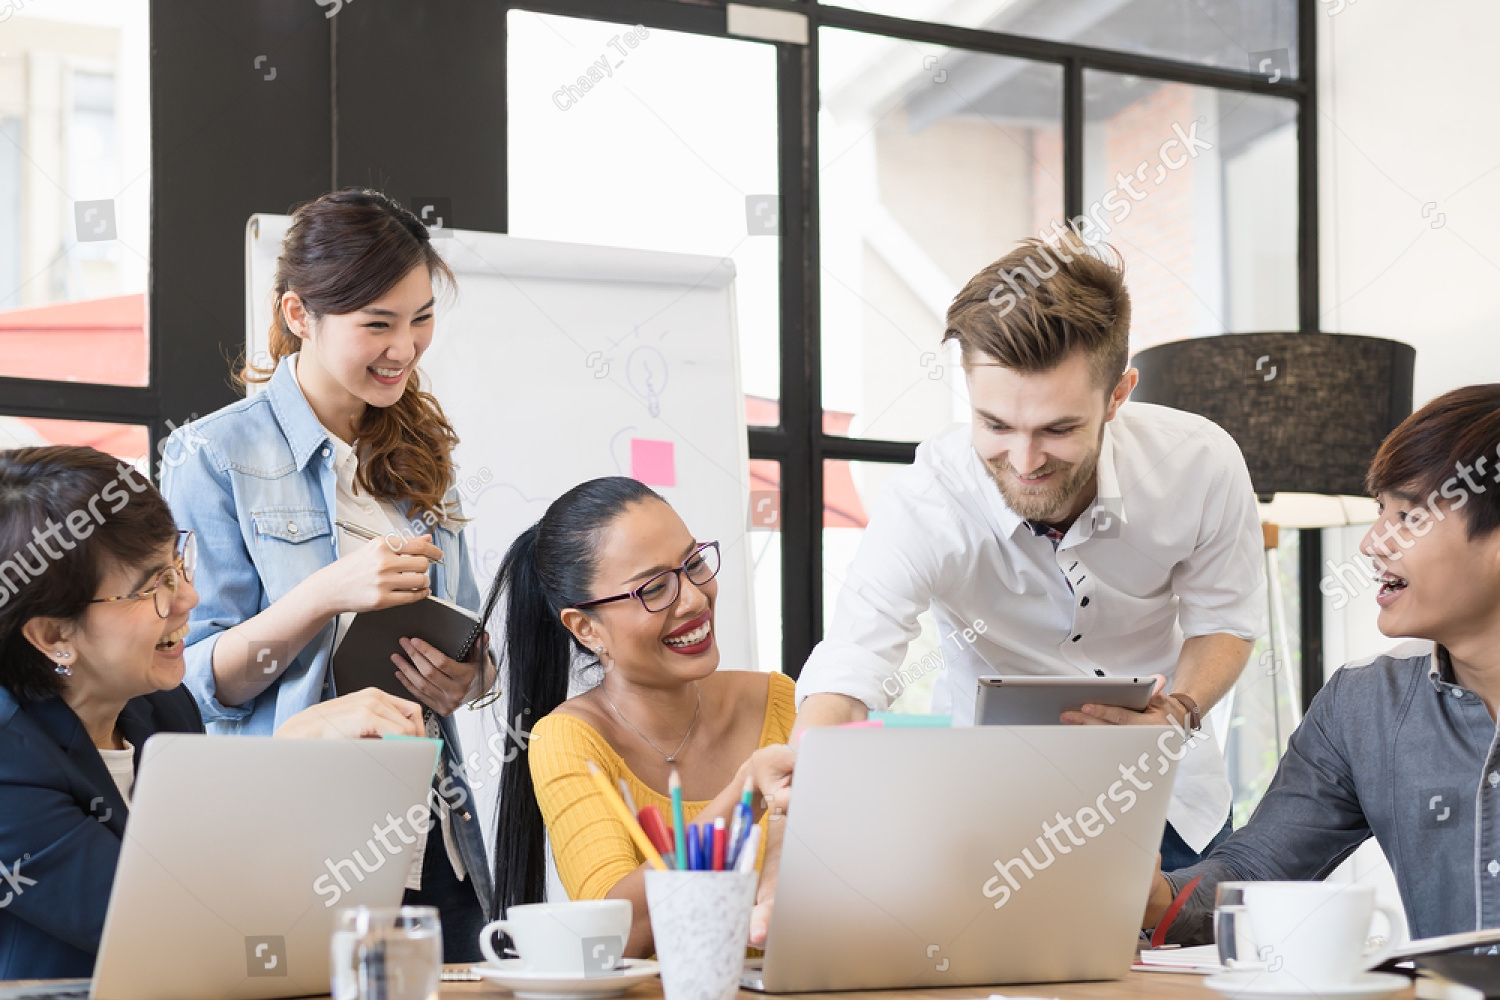 stock-photo-multiethnic-group-of-happy-business-people-working-together-meeting-and-brainstorming-in-office-598400243.jpg